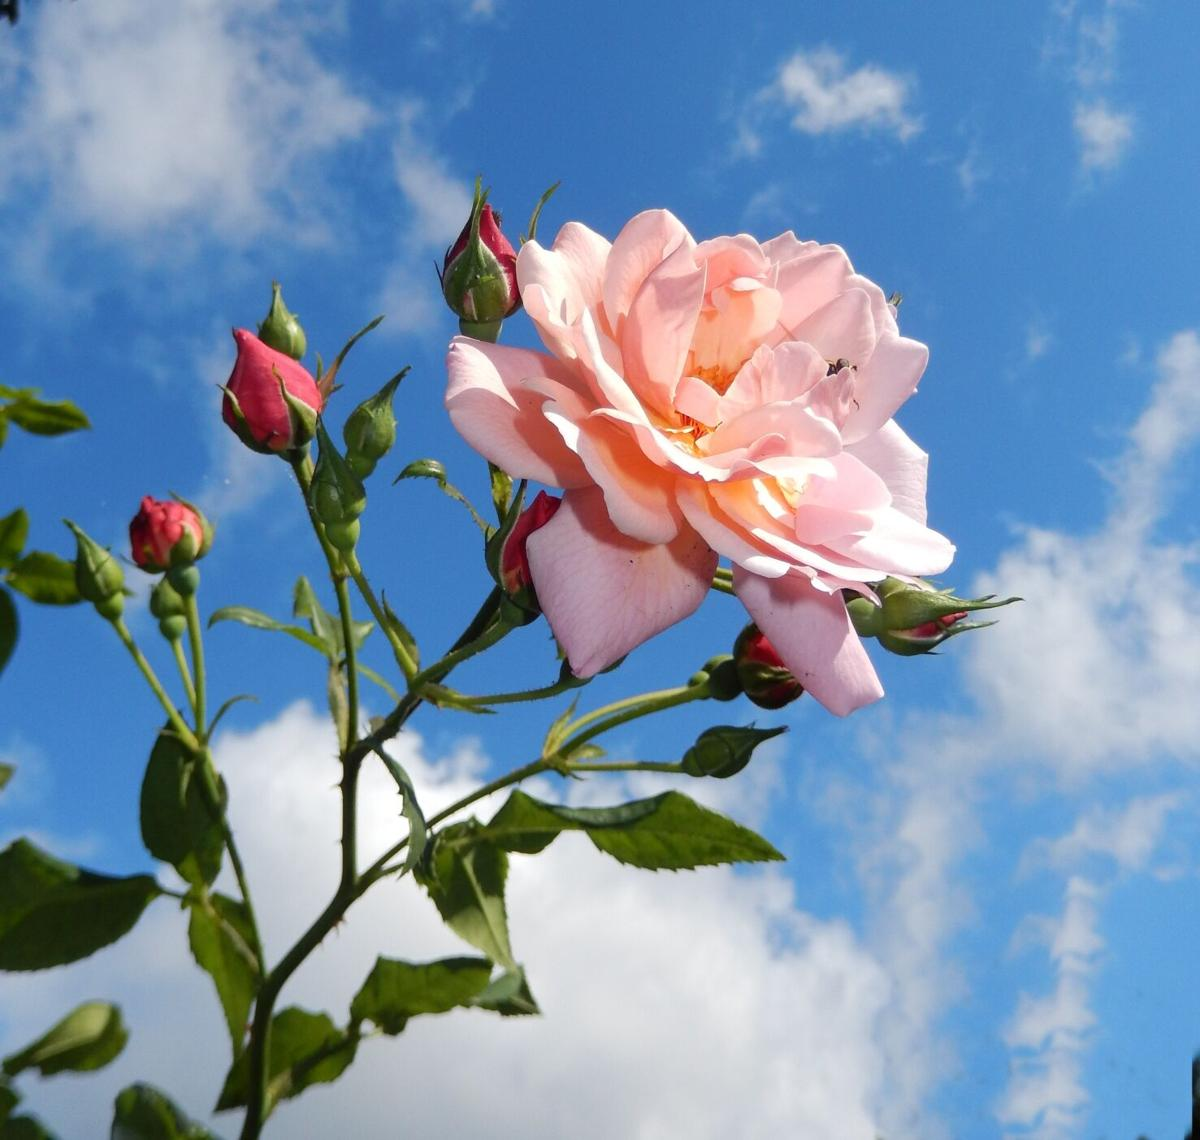 Pink Rose flower and buds at blue sky with white clouds